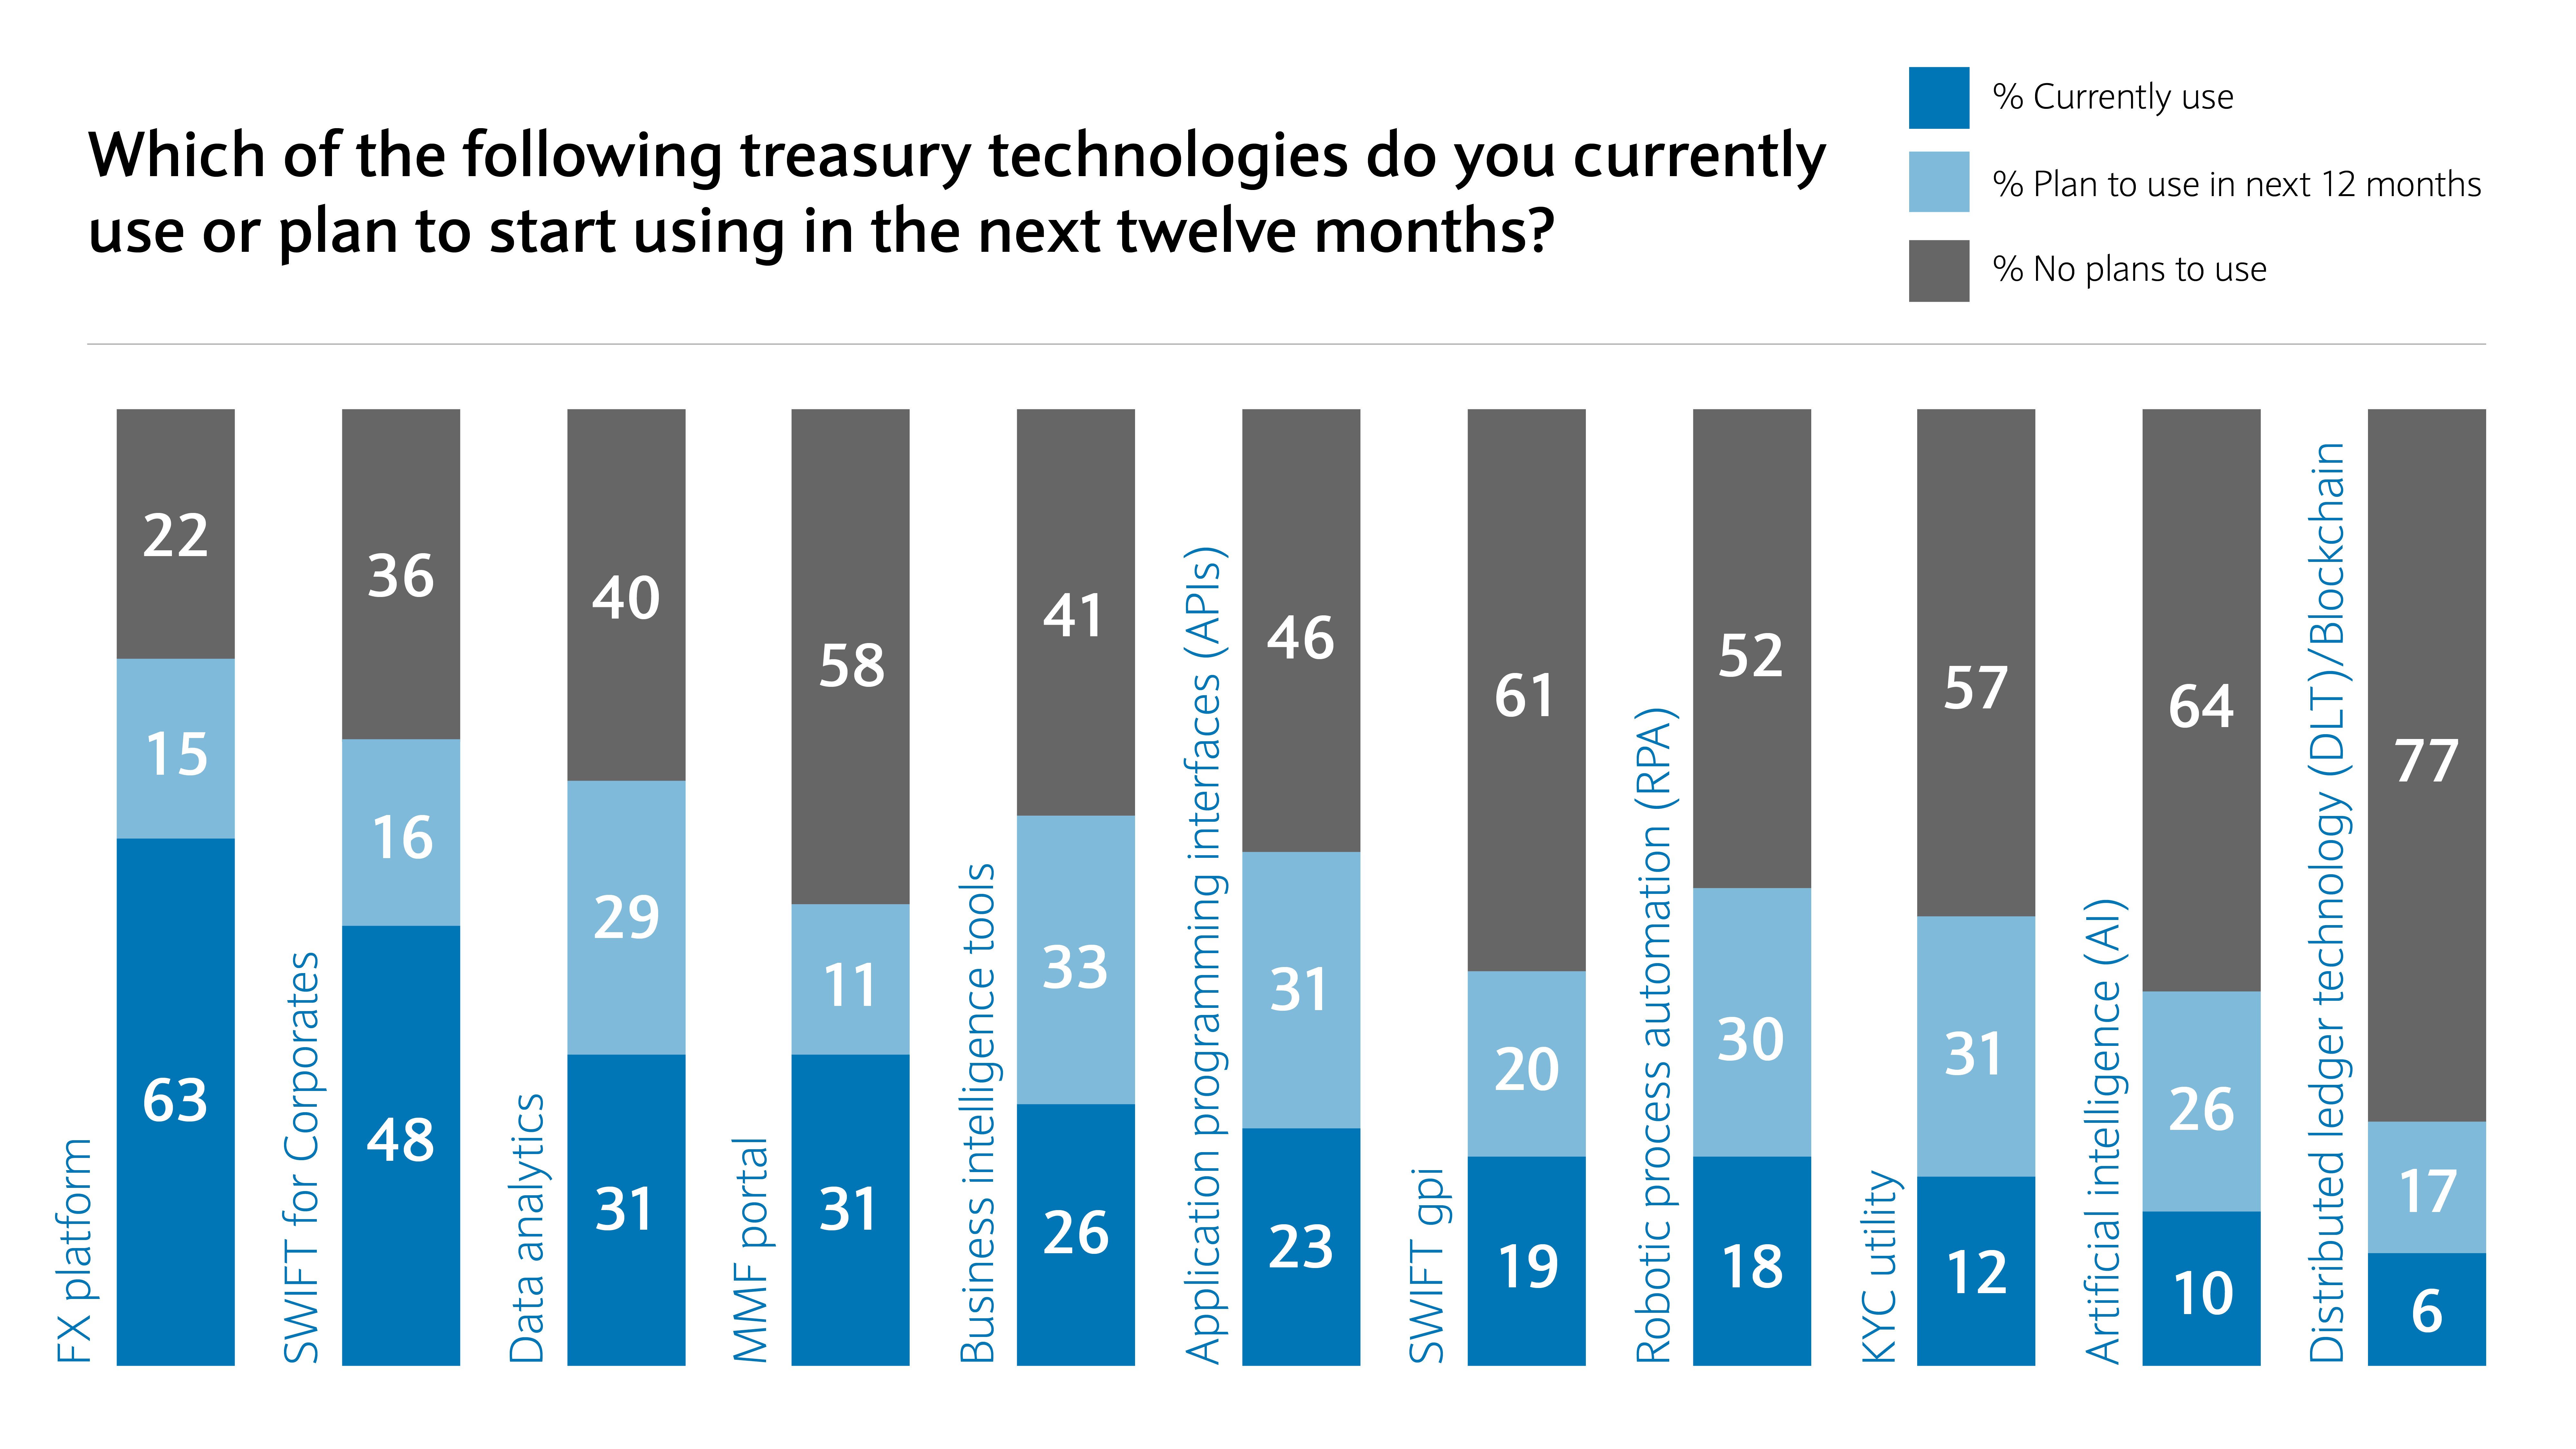 Which of the following treasury technologies do you currently use of plan to start using in the next twelve months?